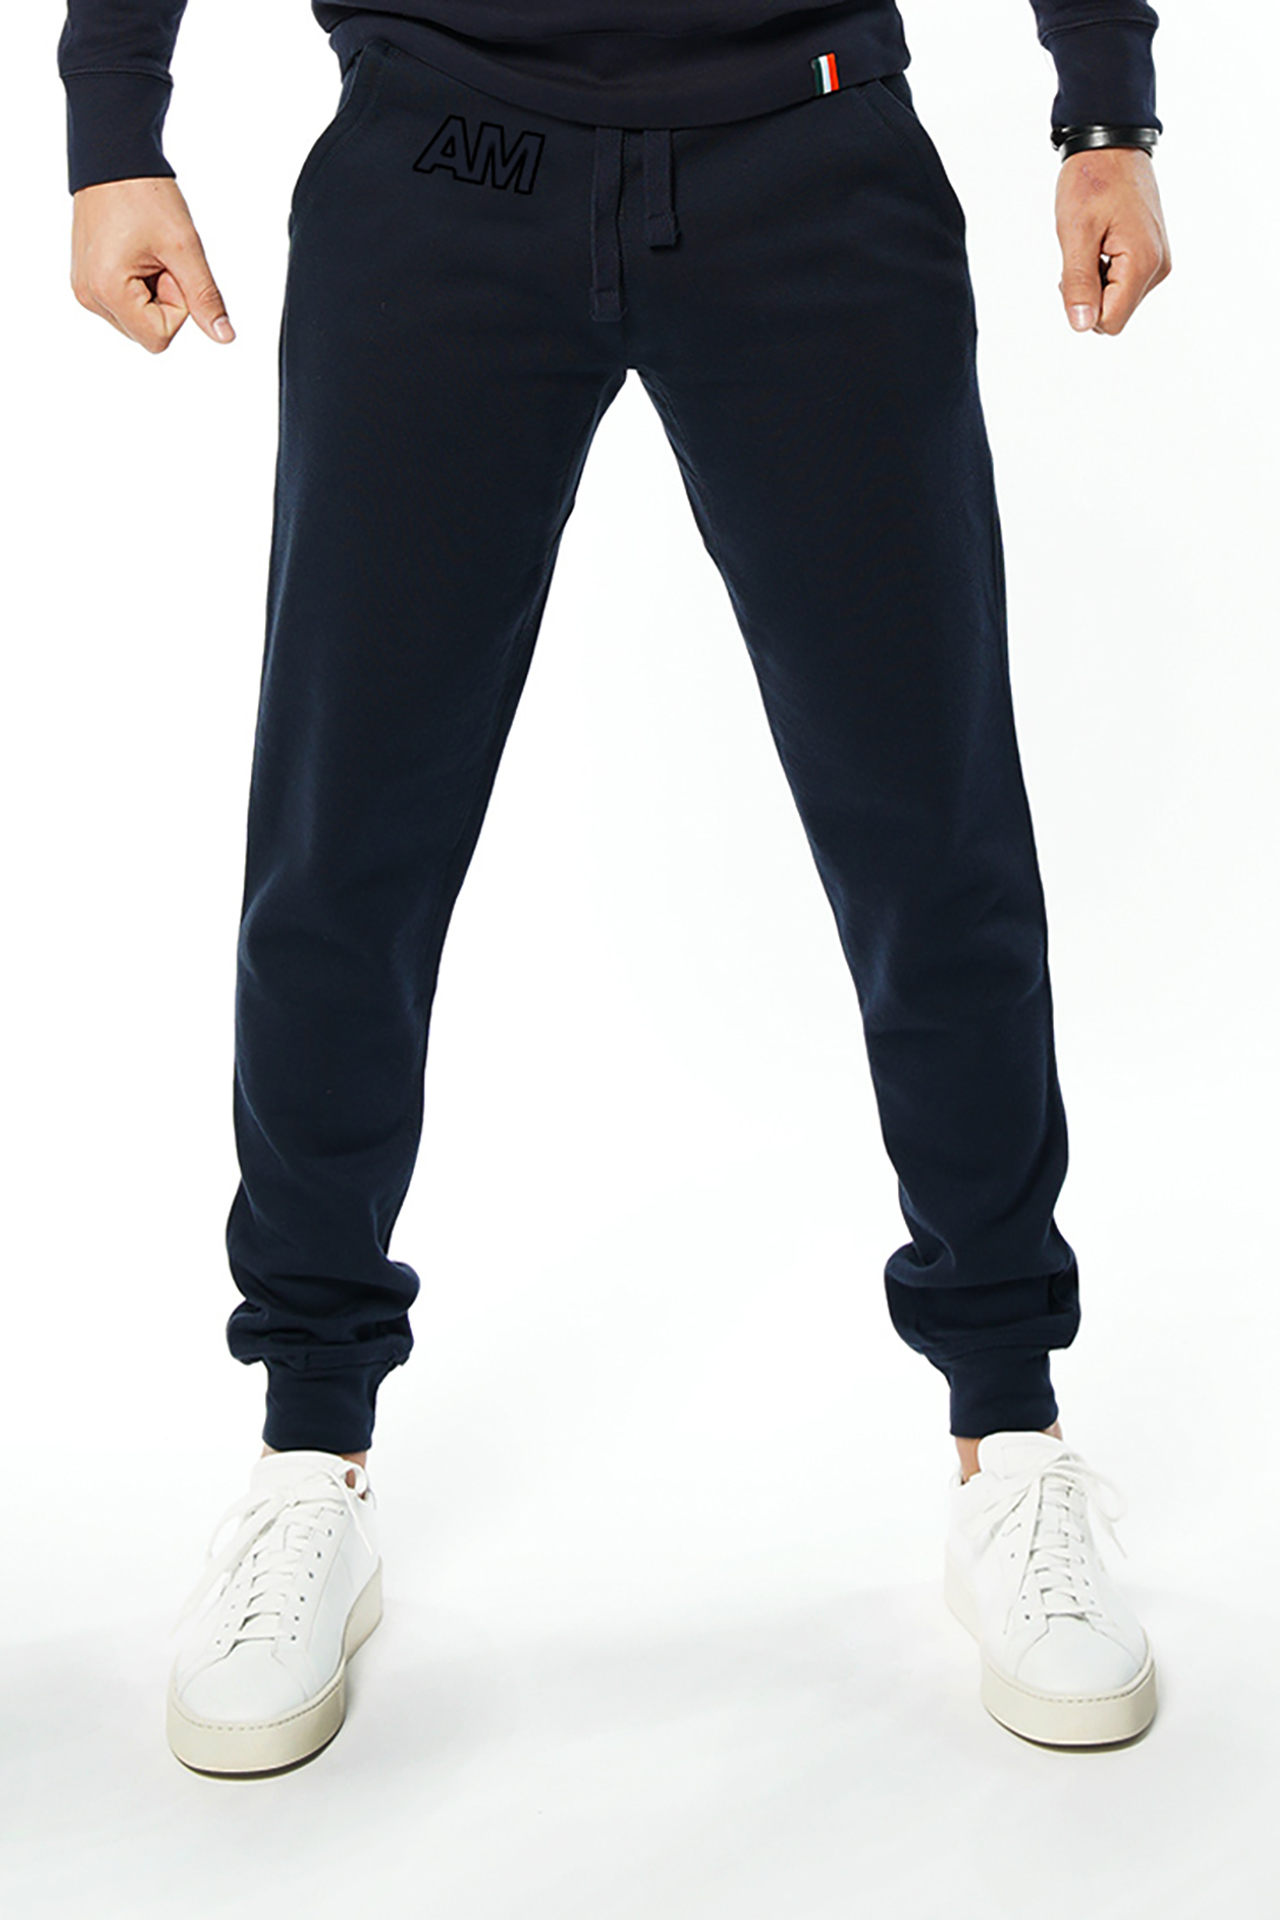 AM Jogger Sweatpants in Navy with Black Stitch